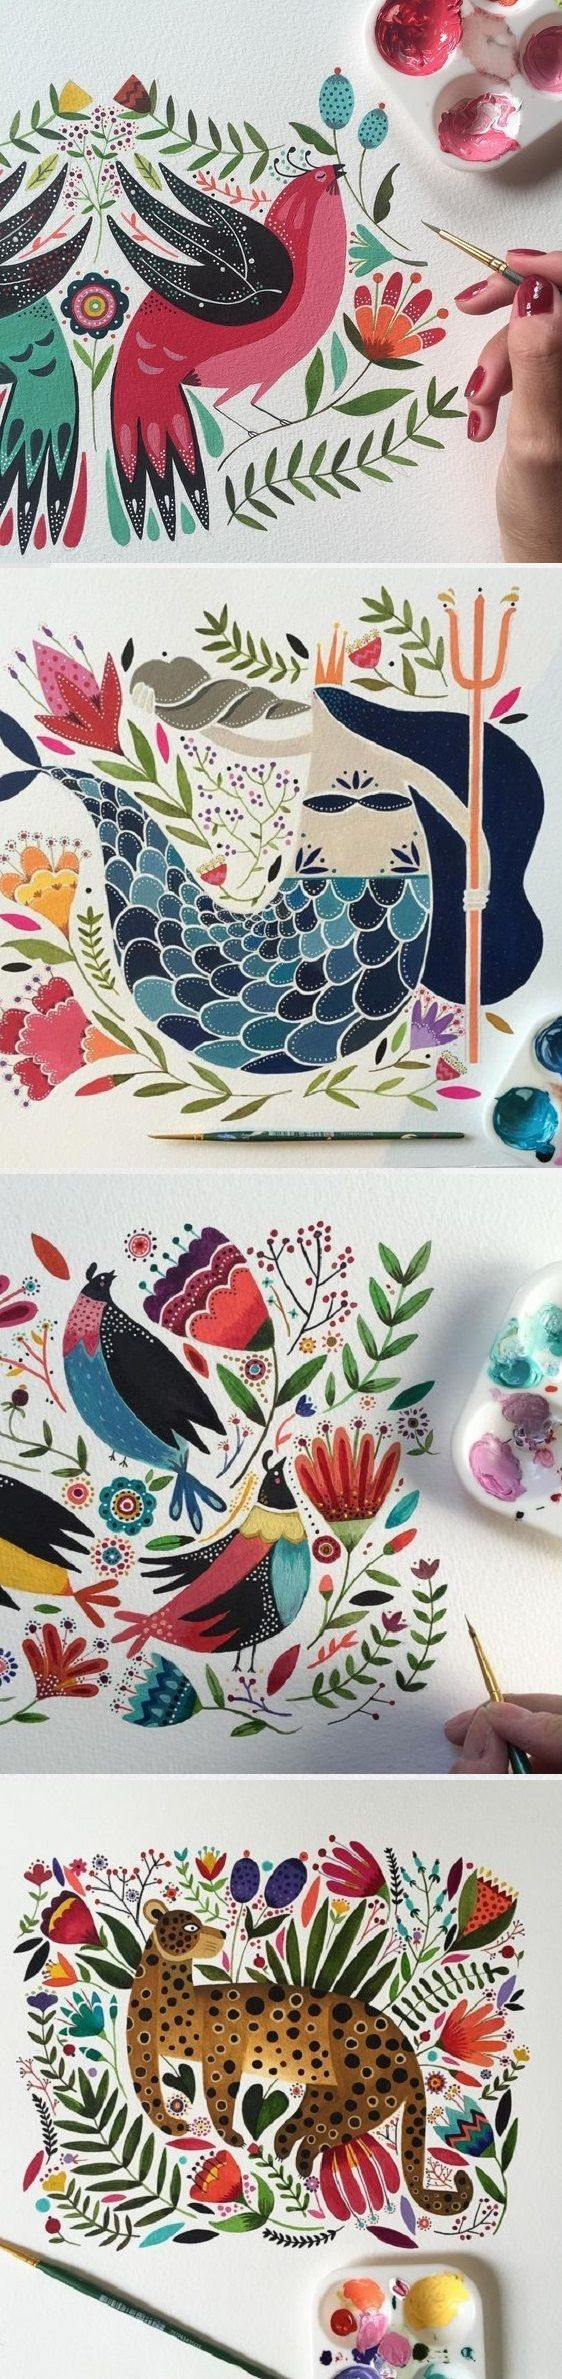 So many beautiful colors and details in the work of Maya Hanisch, on the blog!